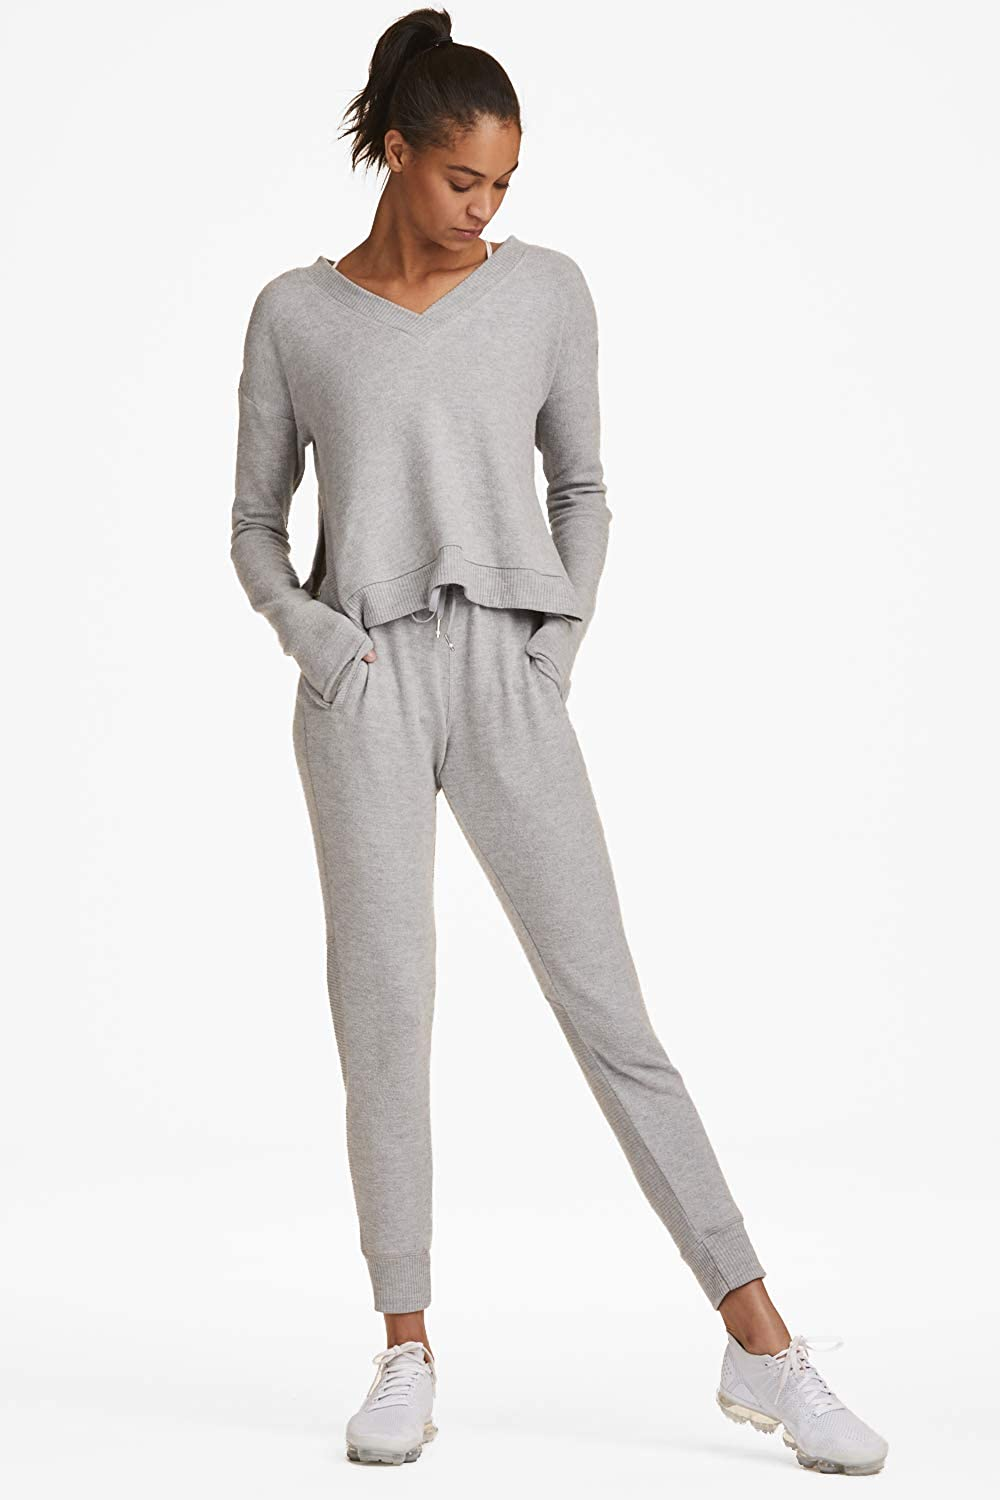 Alala Women's Wander Sweatpant, Grey